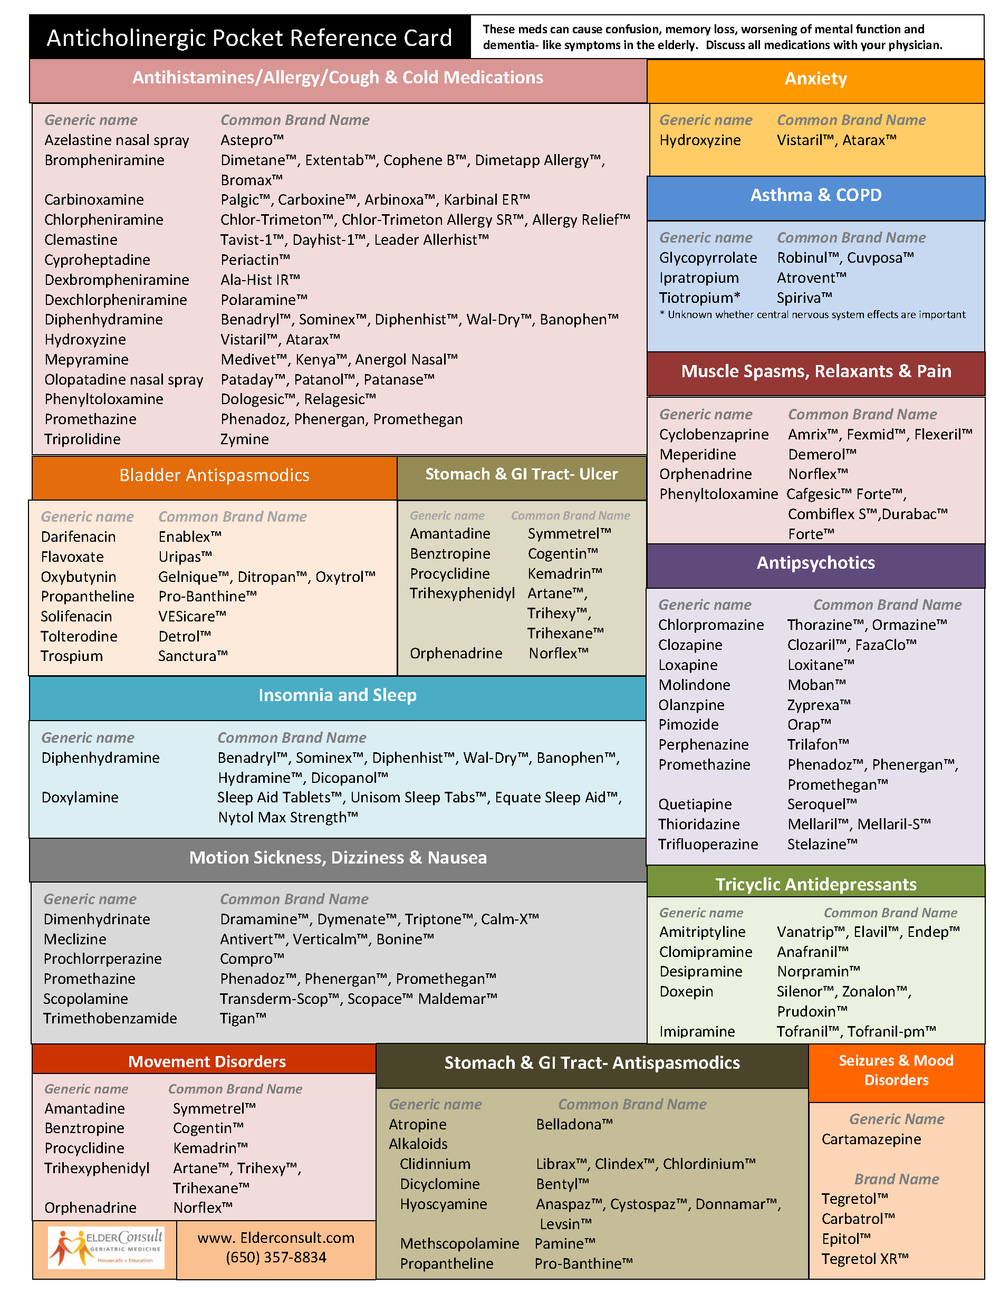 Anticholinergic Pocket Reference Card- ECGM 2018.png